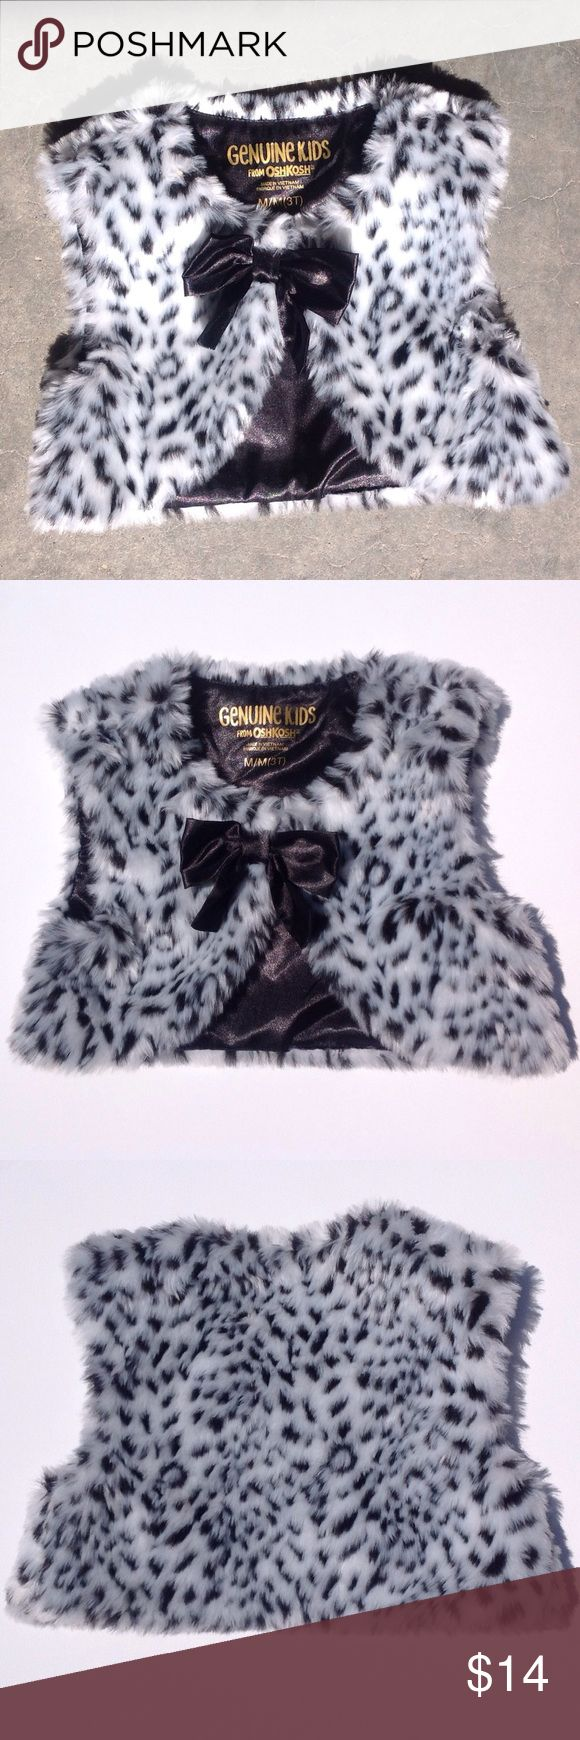 OshKosh Vest - 3T 🐼HP@cmsblaz🐼@miss_marcar Black and white girls animal print vest with satin bow and snap collar. Polyester/acrylic. Size label M/M 3T Color most accurate in photo 2 Osh Kosh Jackets & Coats Vests